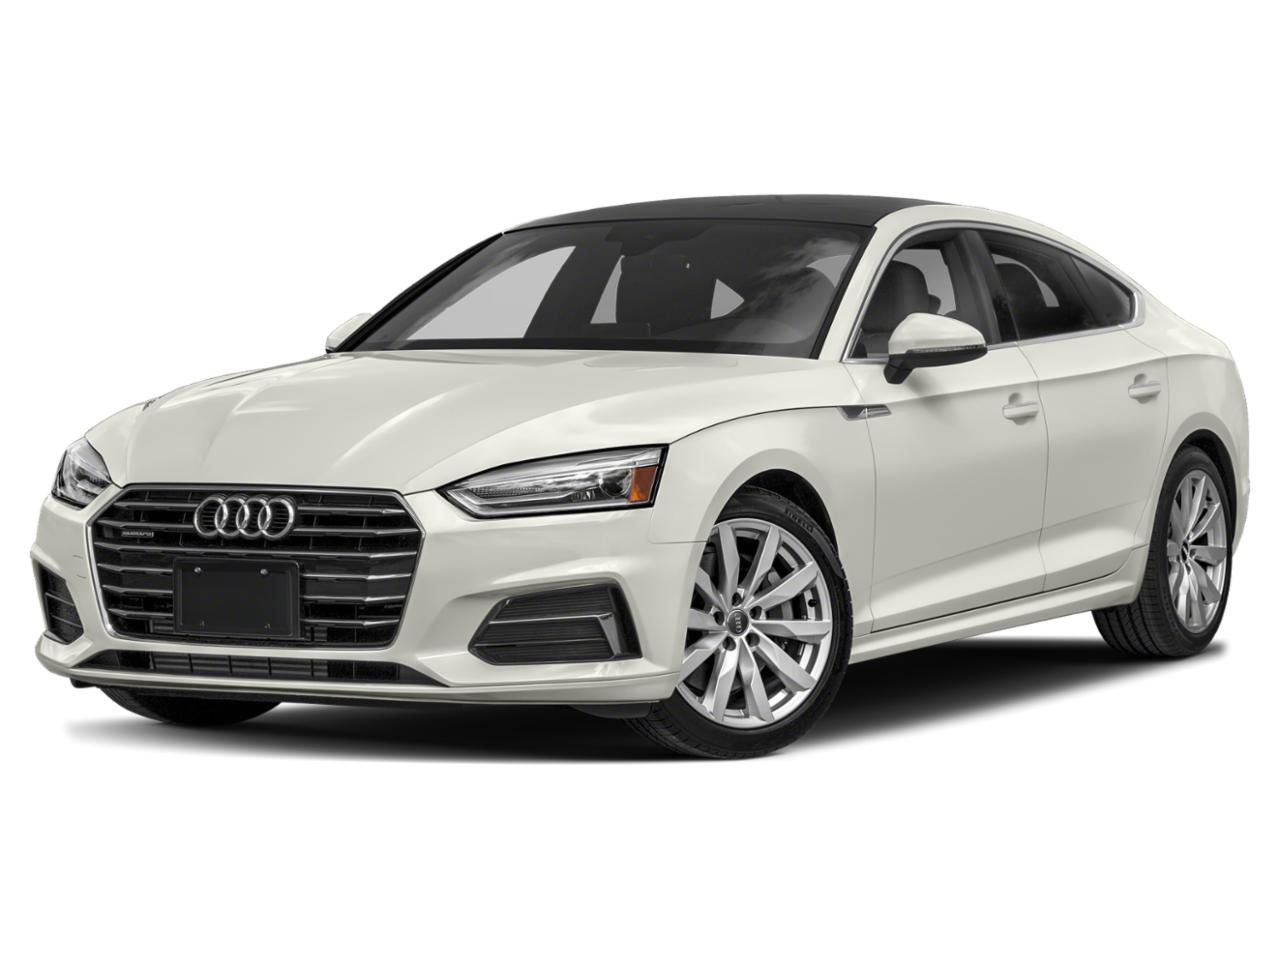 2019 Audi A5 Sportback Vehicle Photo in Tucson, AZ 85705